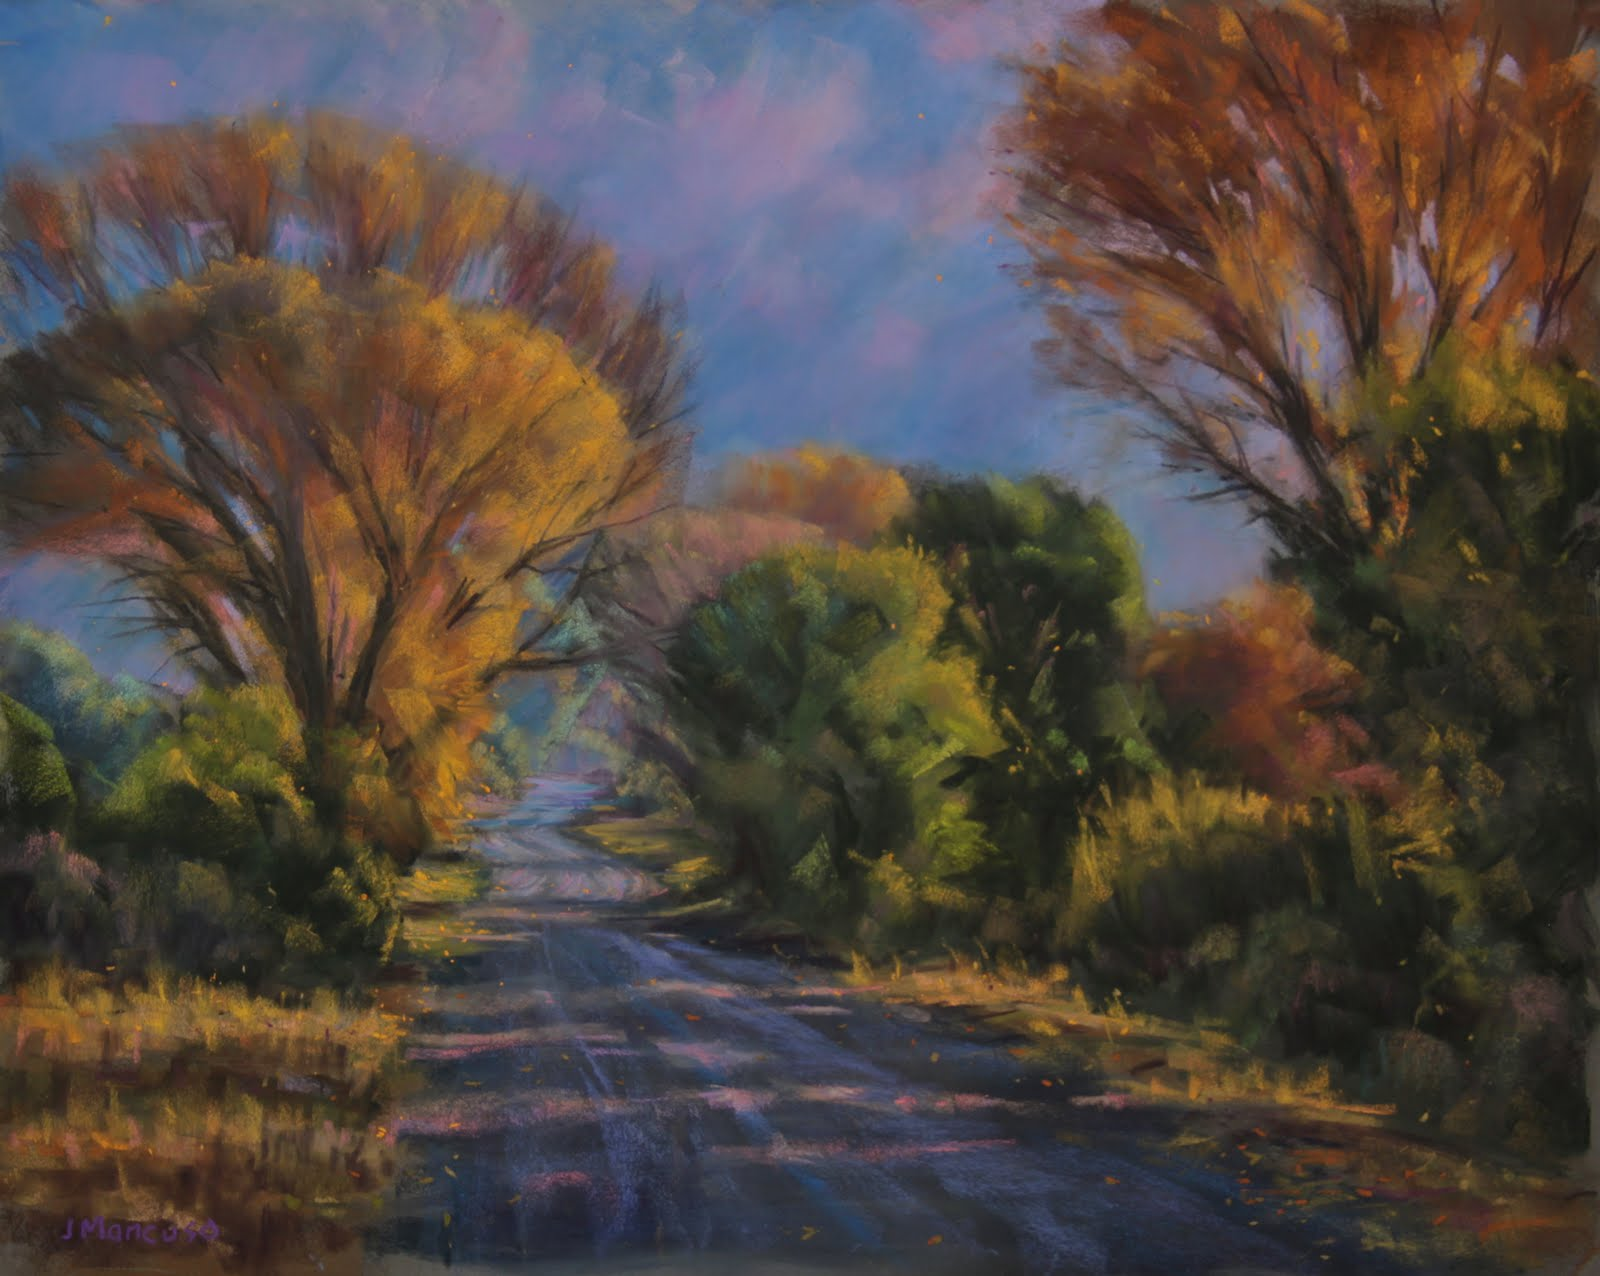 paintings by joe mancuso down a country road 16x20 pastel on